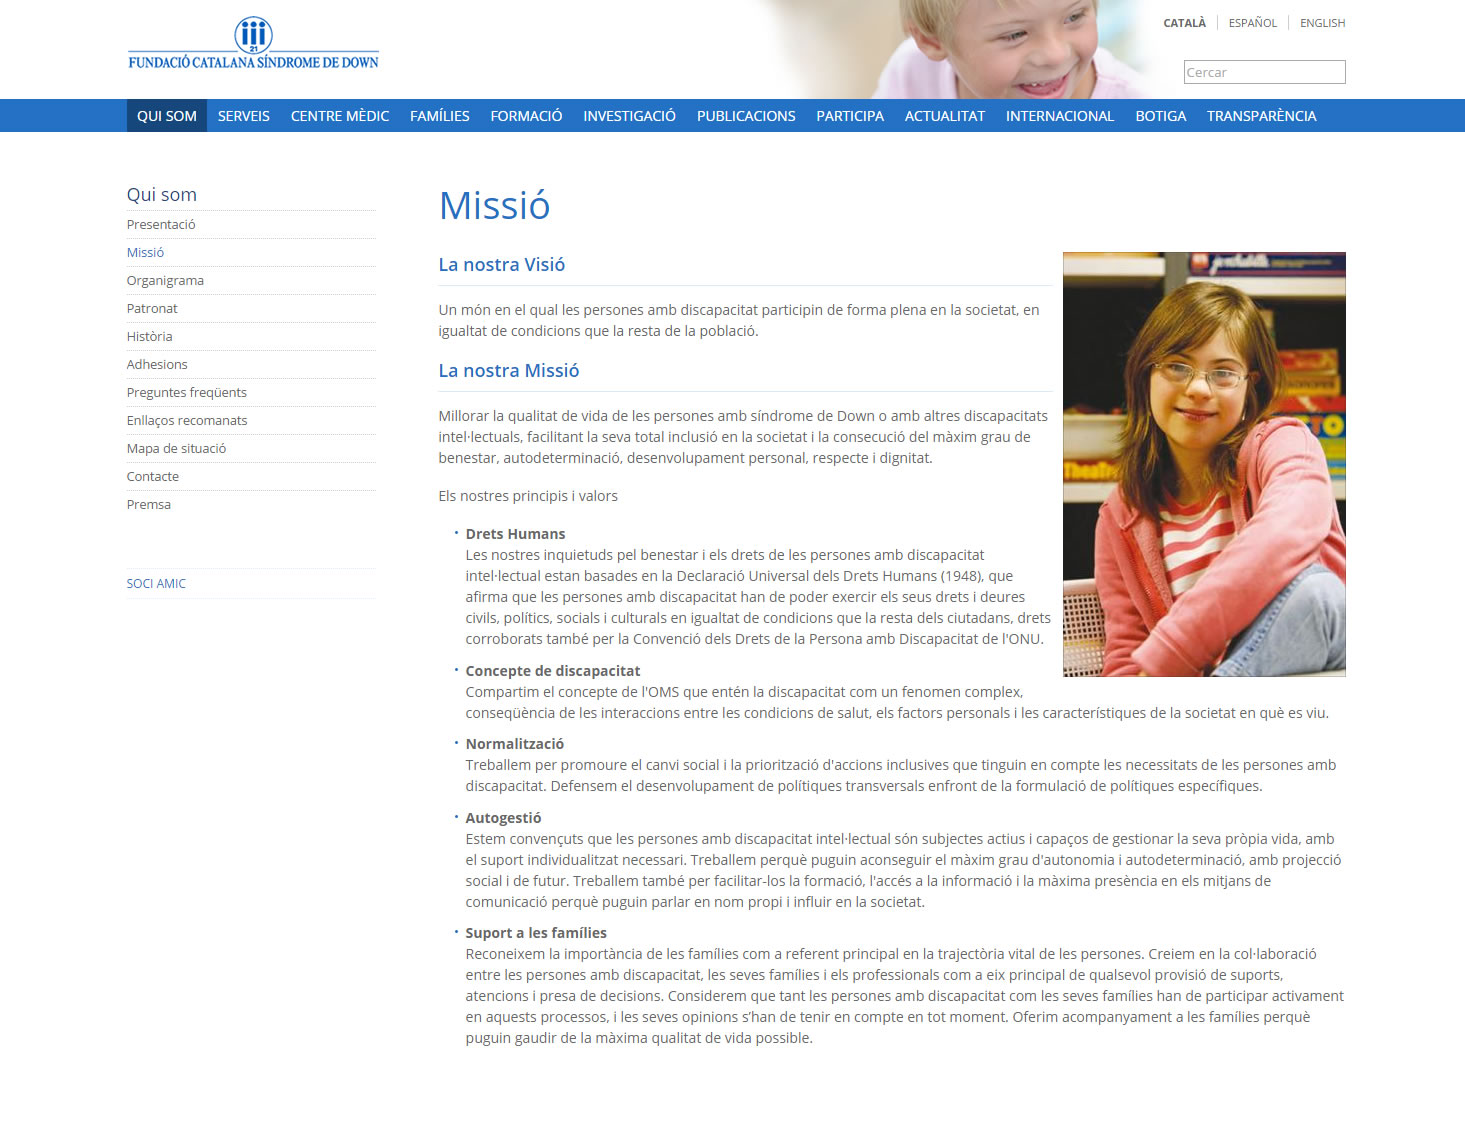 Catalan Down's Syndrome Foundation - Who